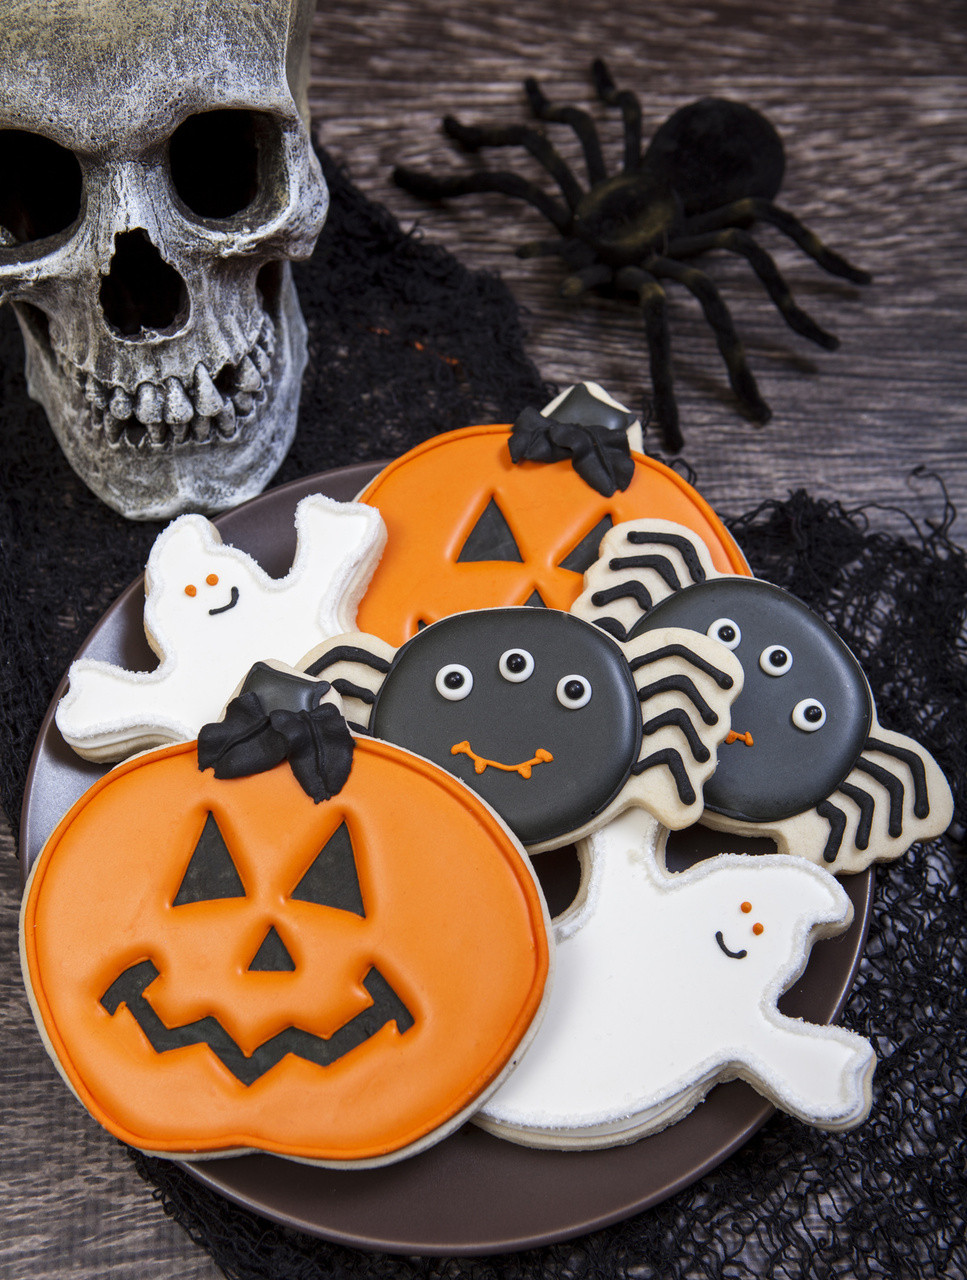 Halloween Cookies Decorations  Spooky Cookie Halloween Cookie Decorations